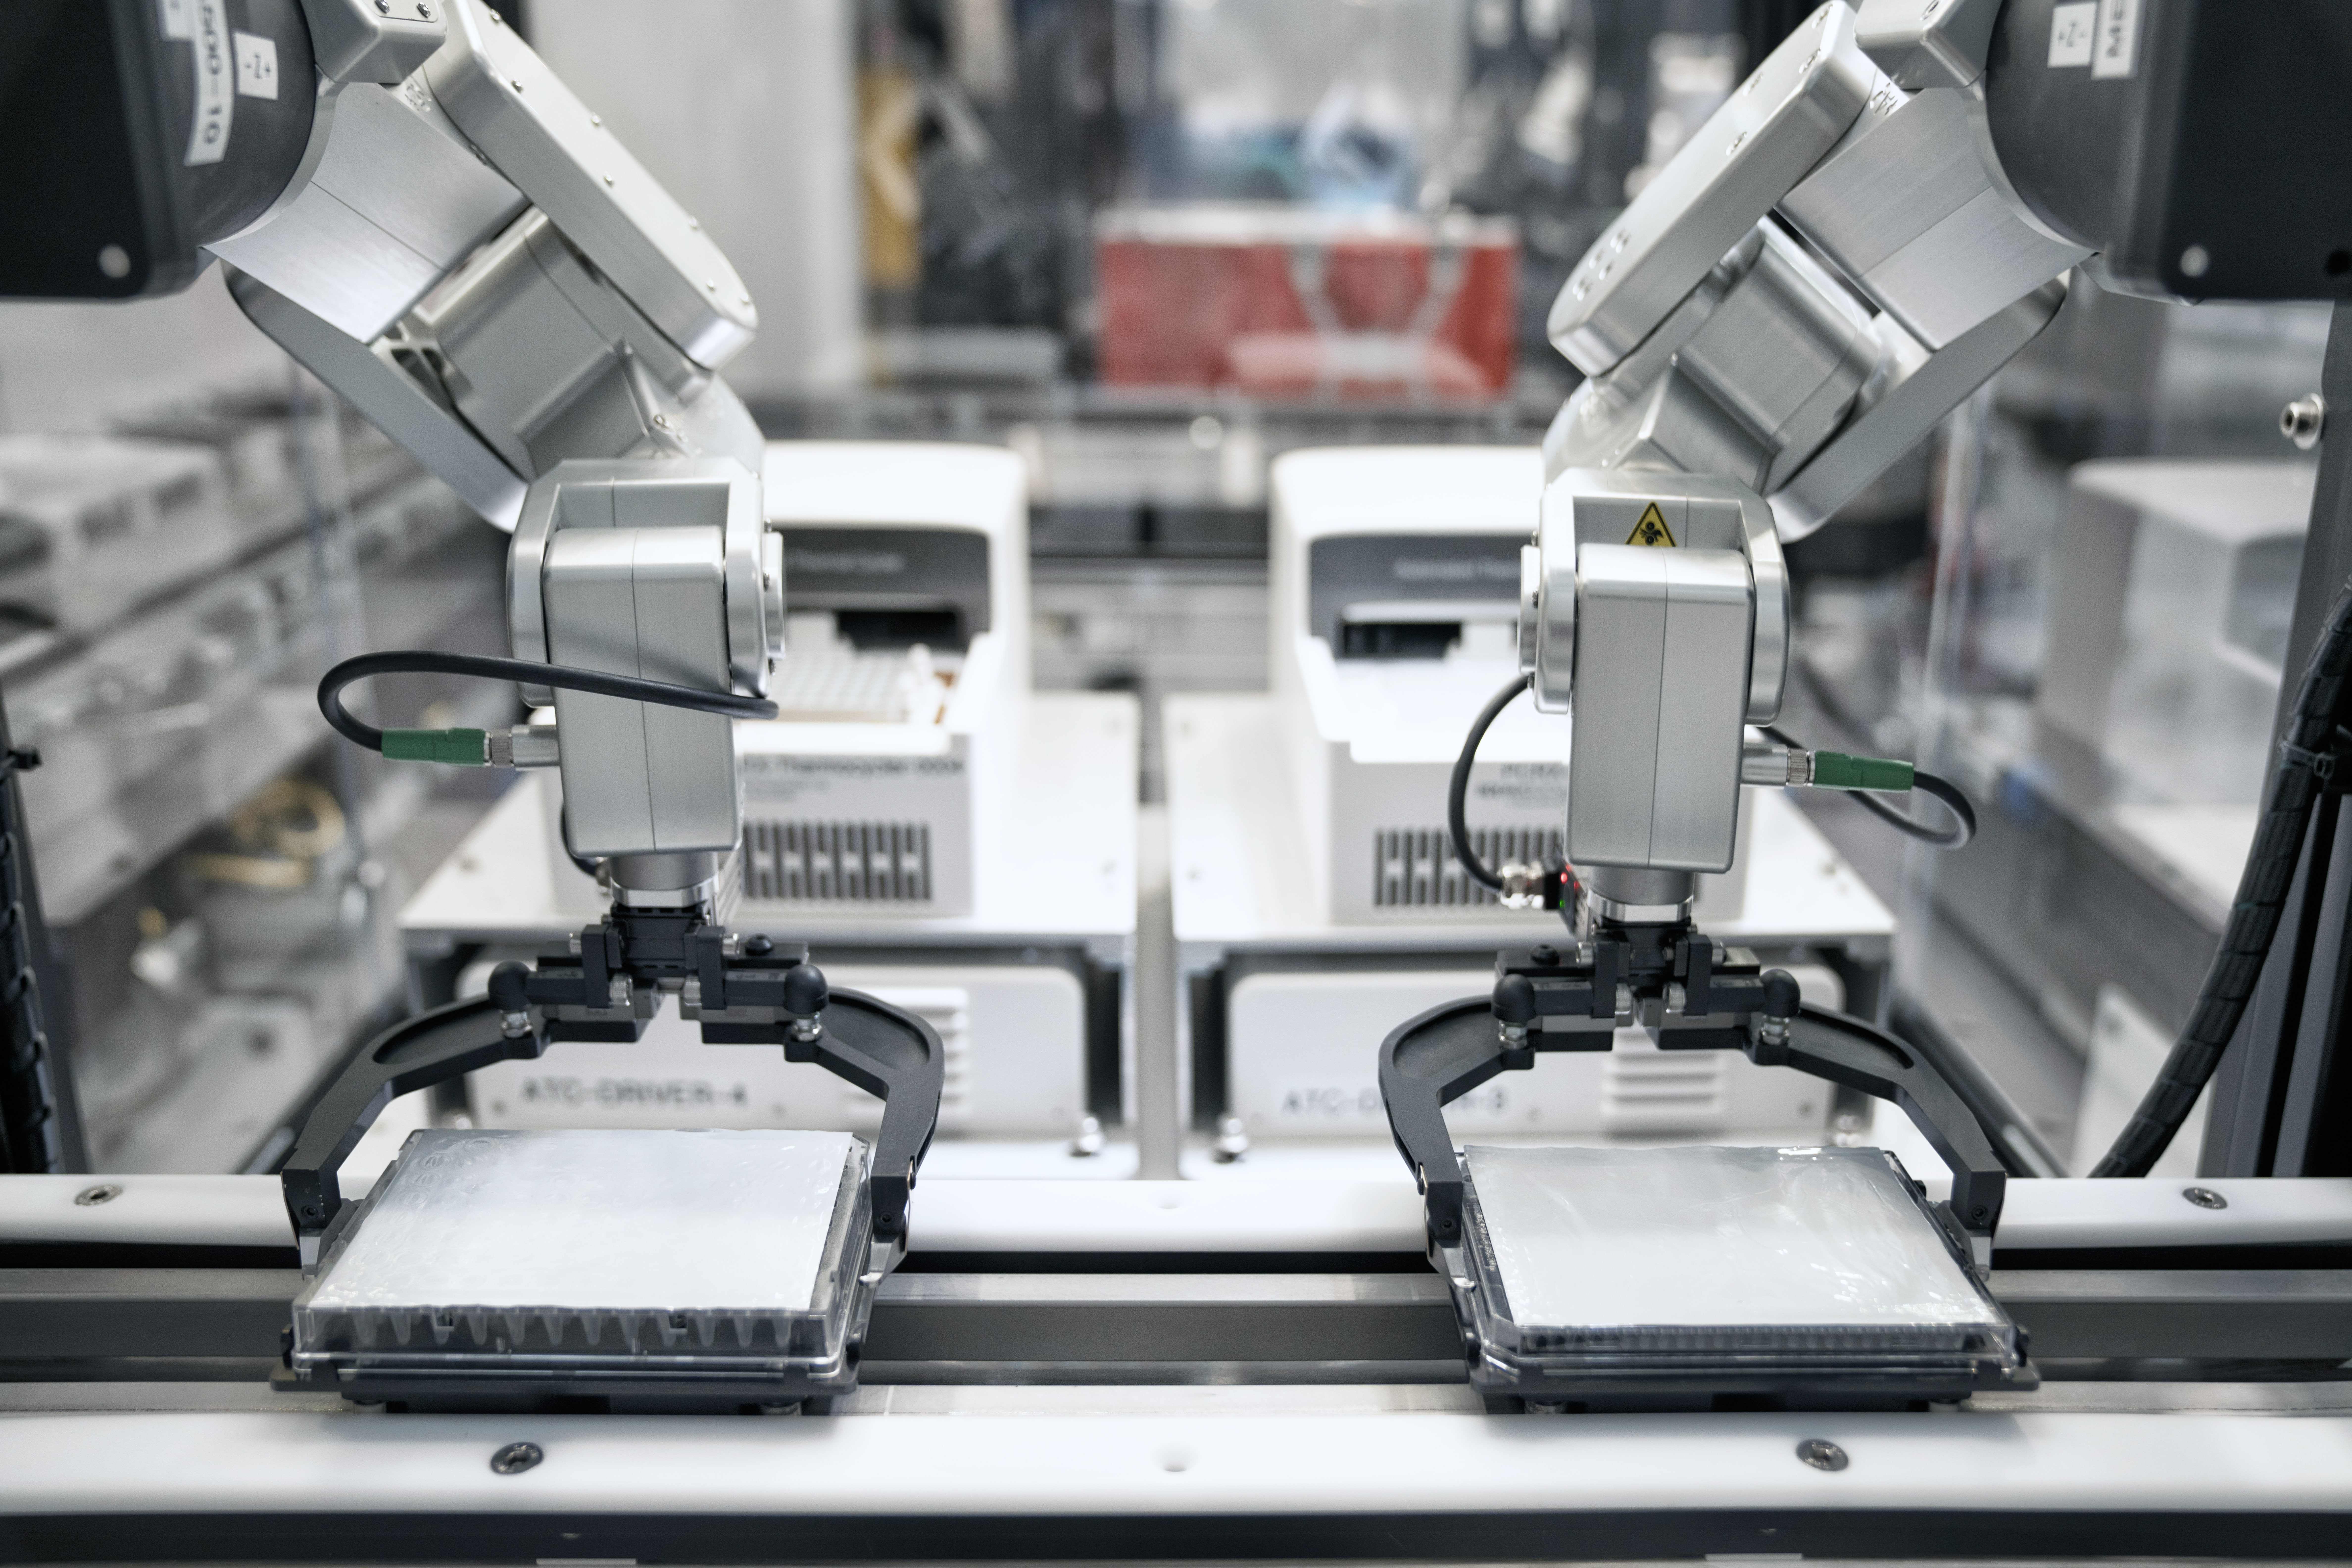 Zymergen uses two meca500 arms in its lab